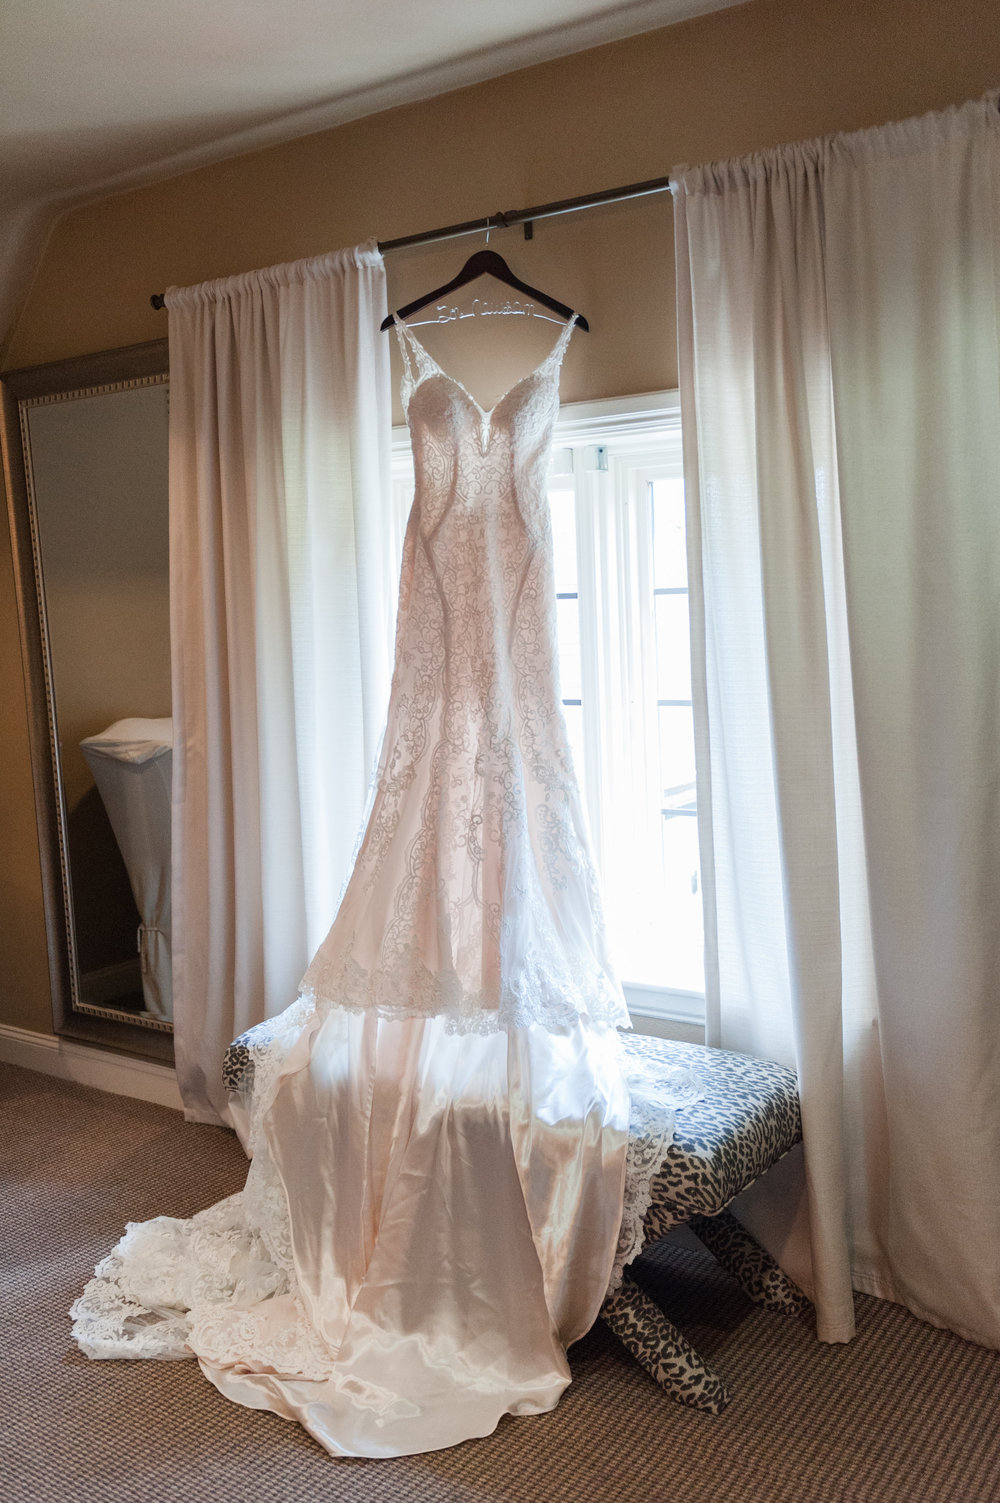 Lace Wedding Dress with Long Train - Ohio Wedding Venue — Brookside Golf & Country Club Wedding